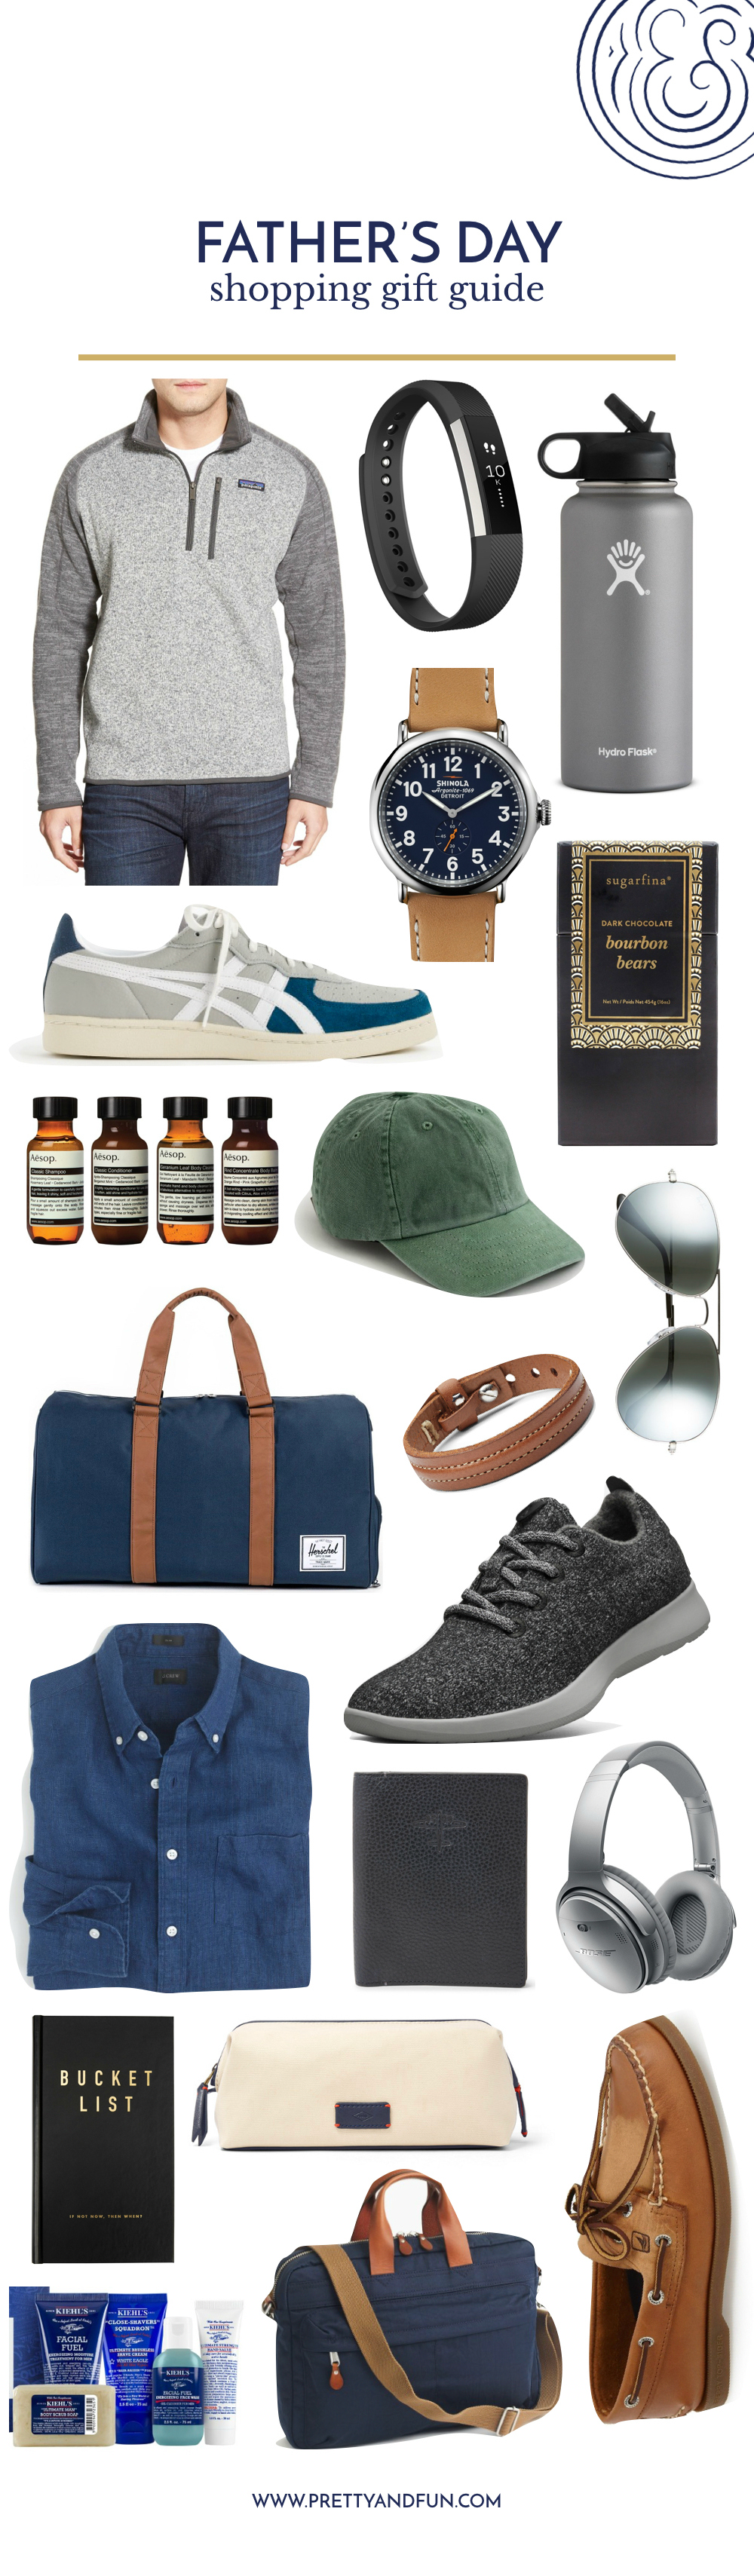 The Best Father's Day Gift Ideas that Dad Will Love.